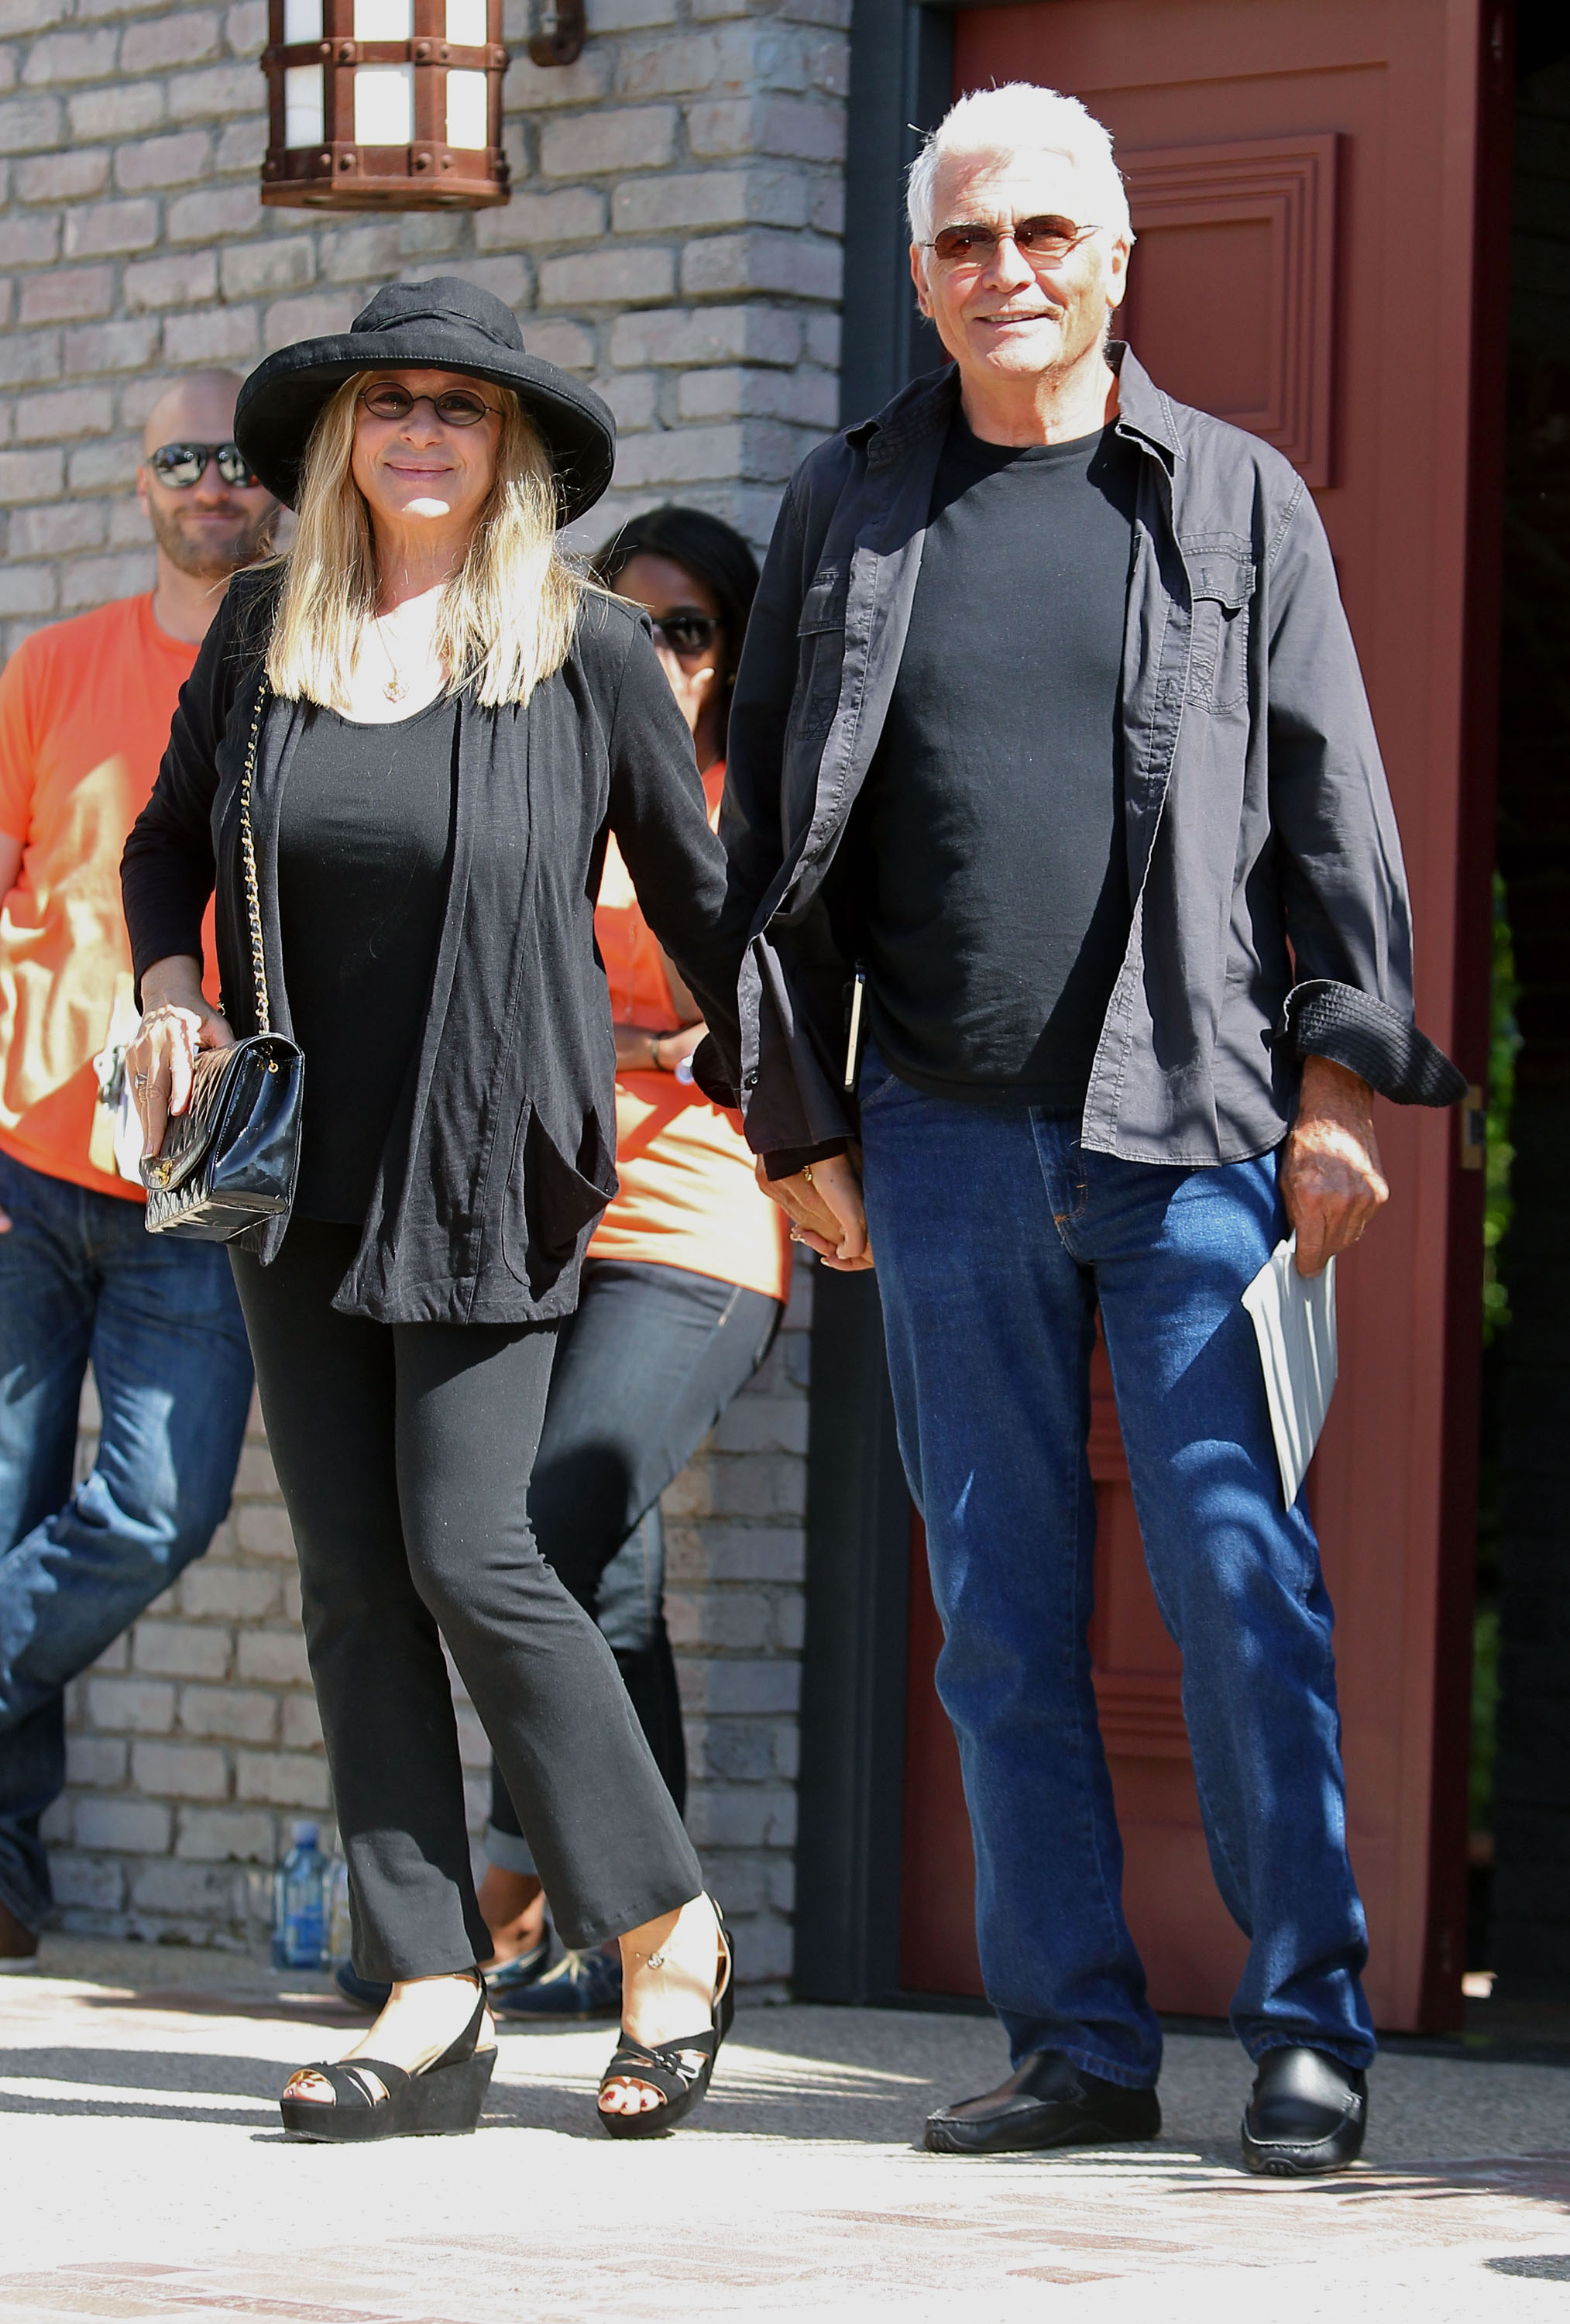 Barbra Streisand and James Brolin were attendees at a Memorial Day party at Joel Silver's house in LA.